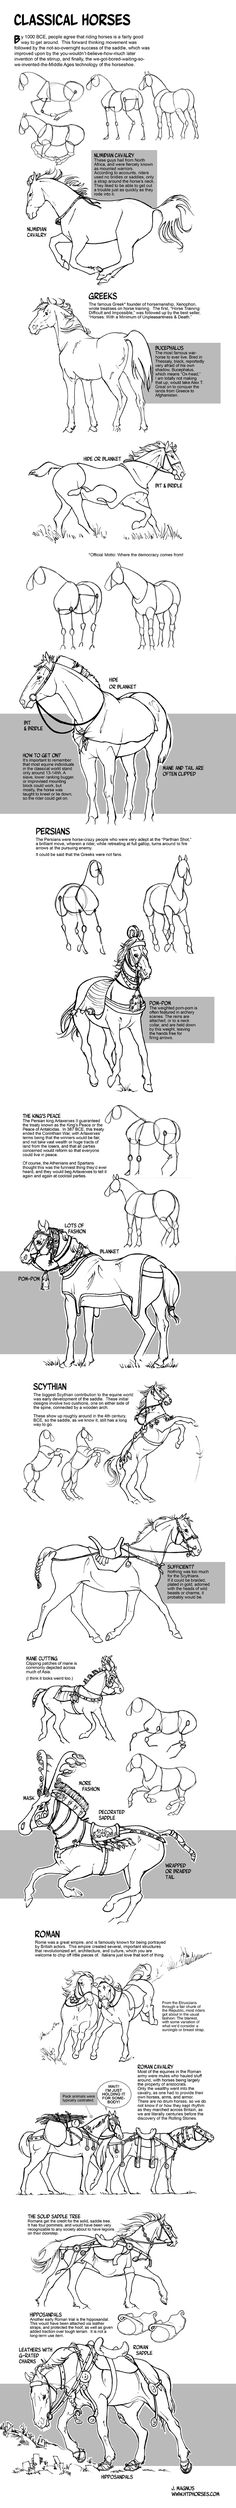 How to Draw Horses of the Classical World by sketcherjak.deviantart.com on @DeviantArt